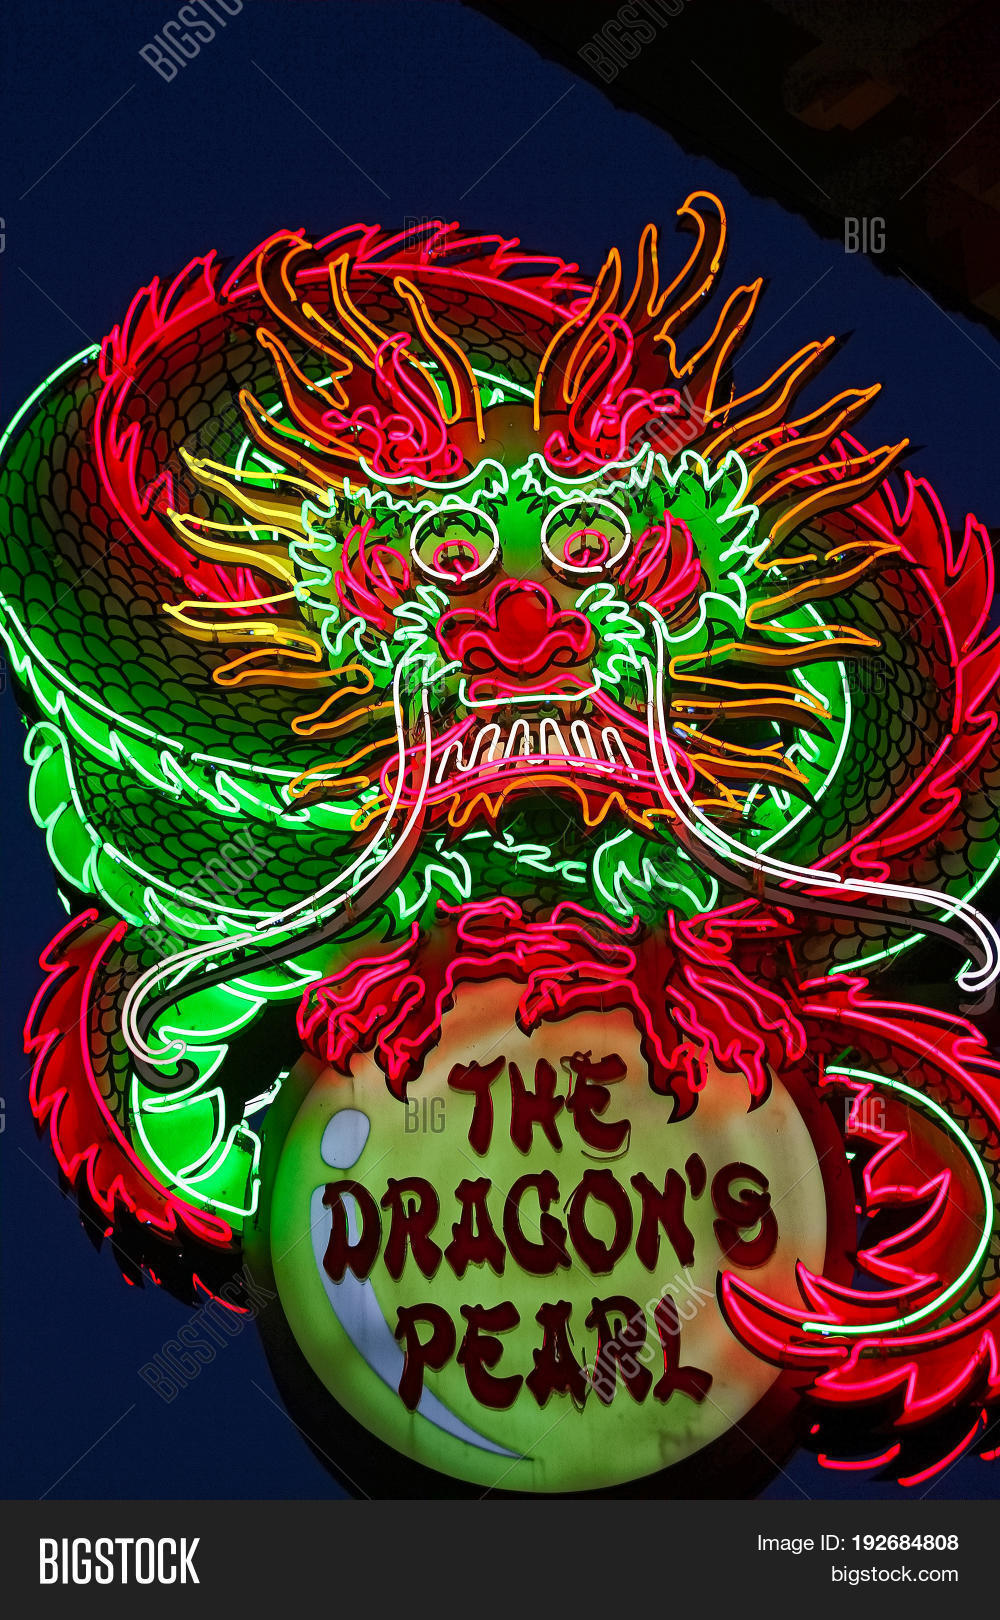 OSAKA, JAPAN - Apr 17, 2017: Restaurant of The Dragon's Pearl sign in